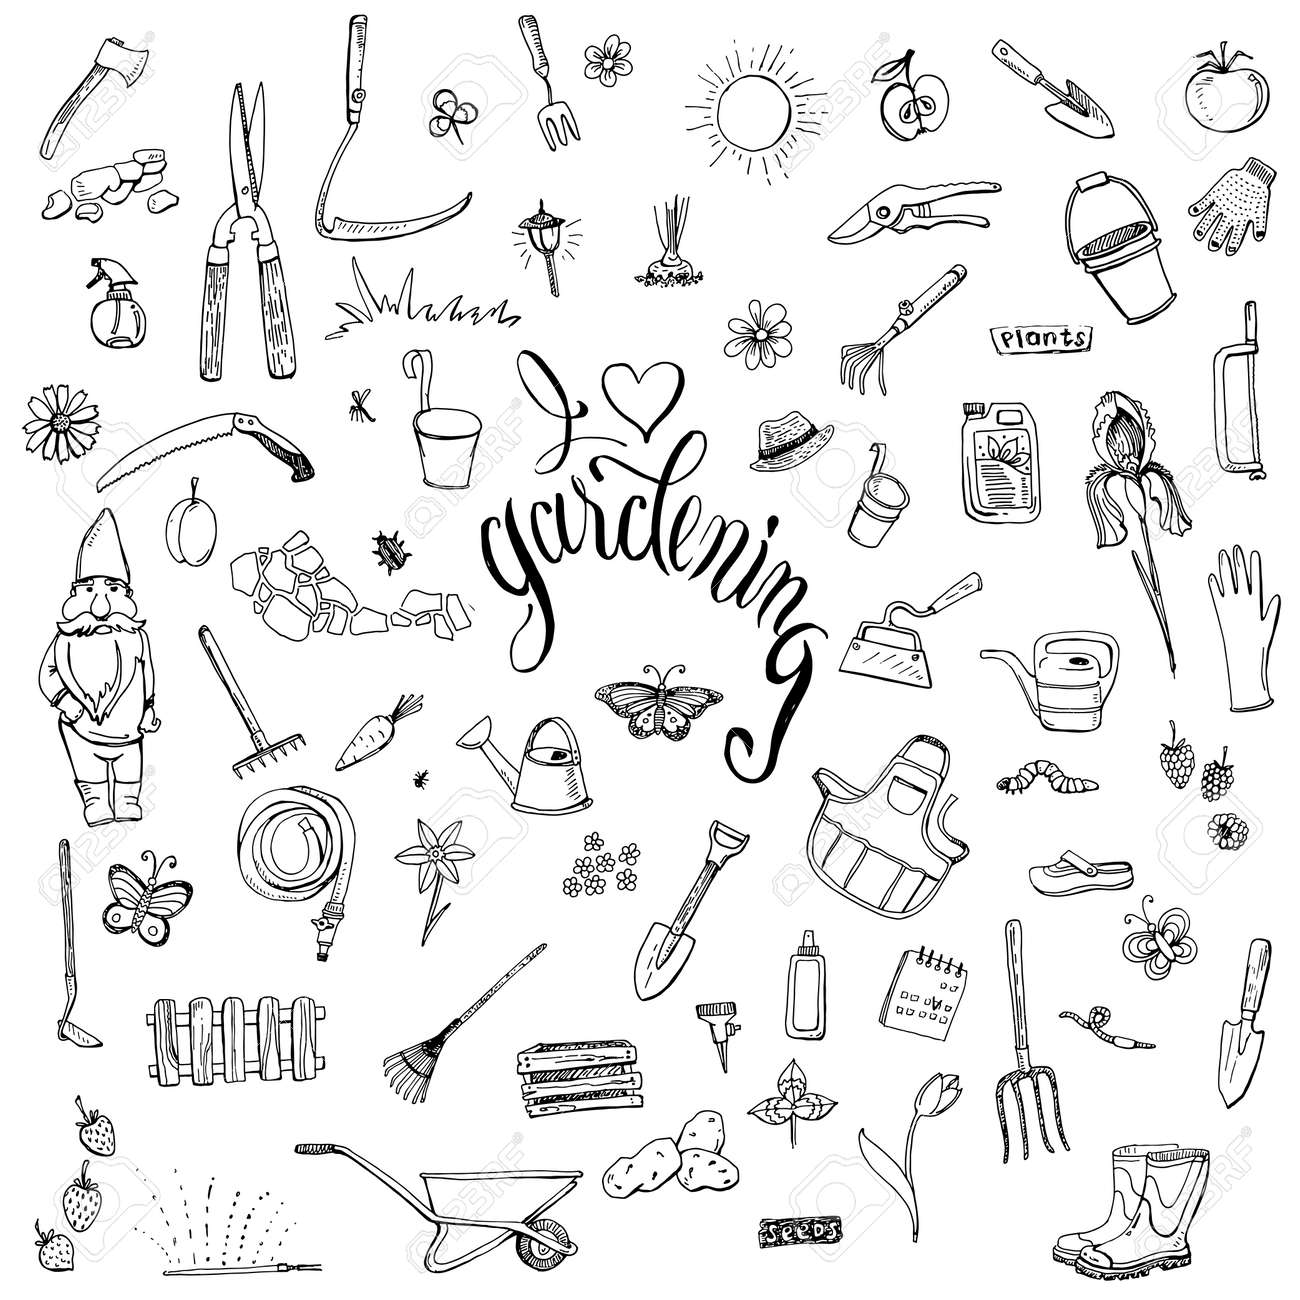 Hand Drawn Doodles Of Gardening Gear. Lettering I Love Gardening. Tools,  Plants,